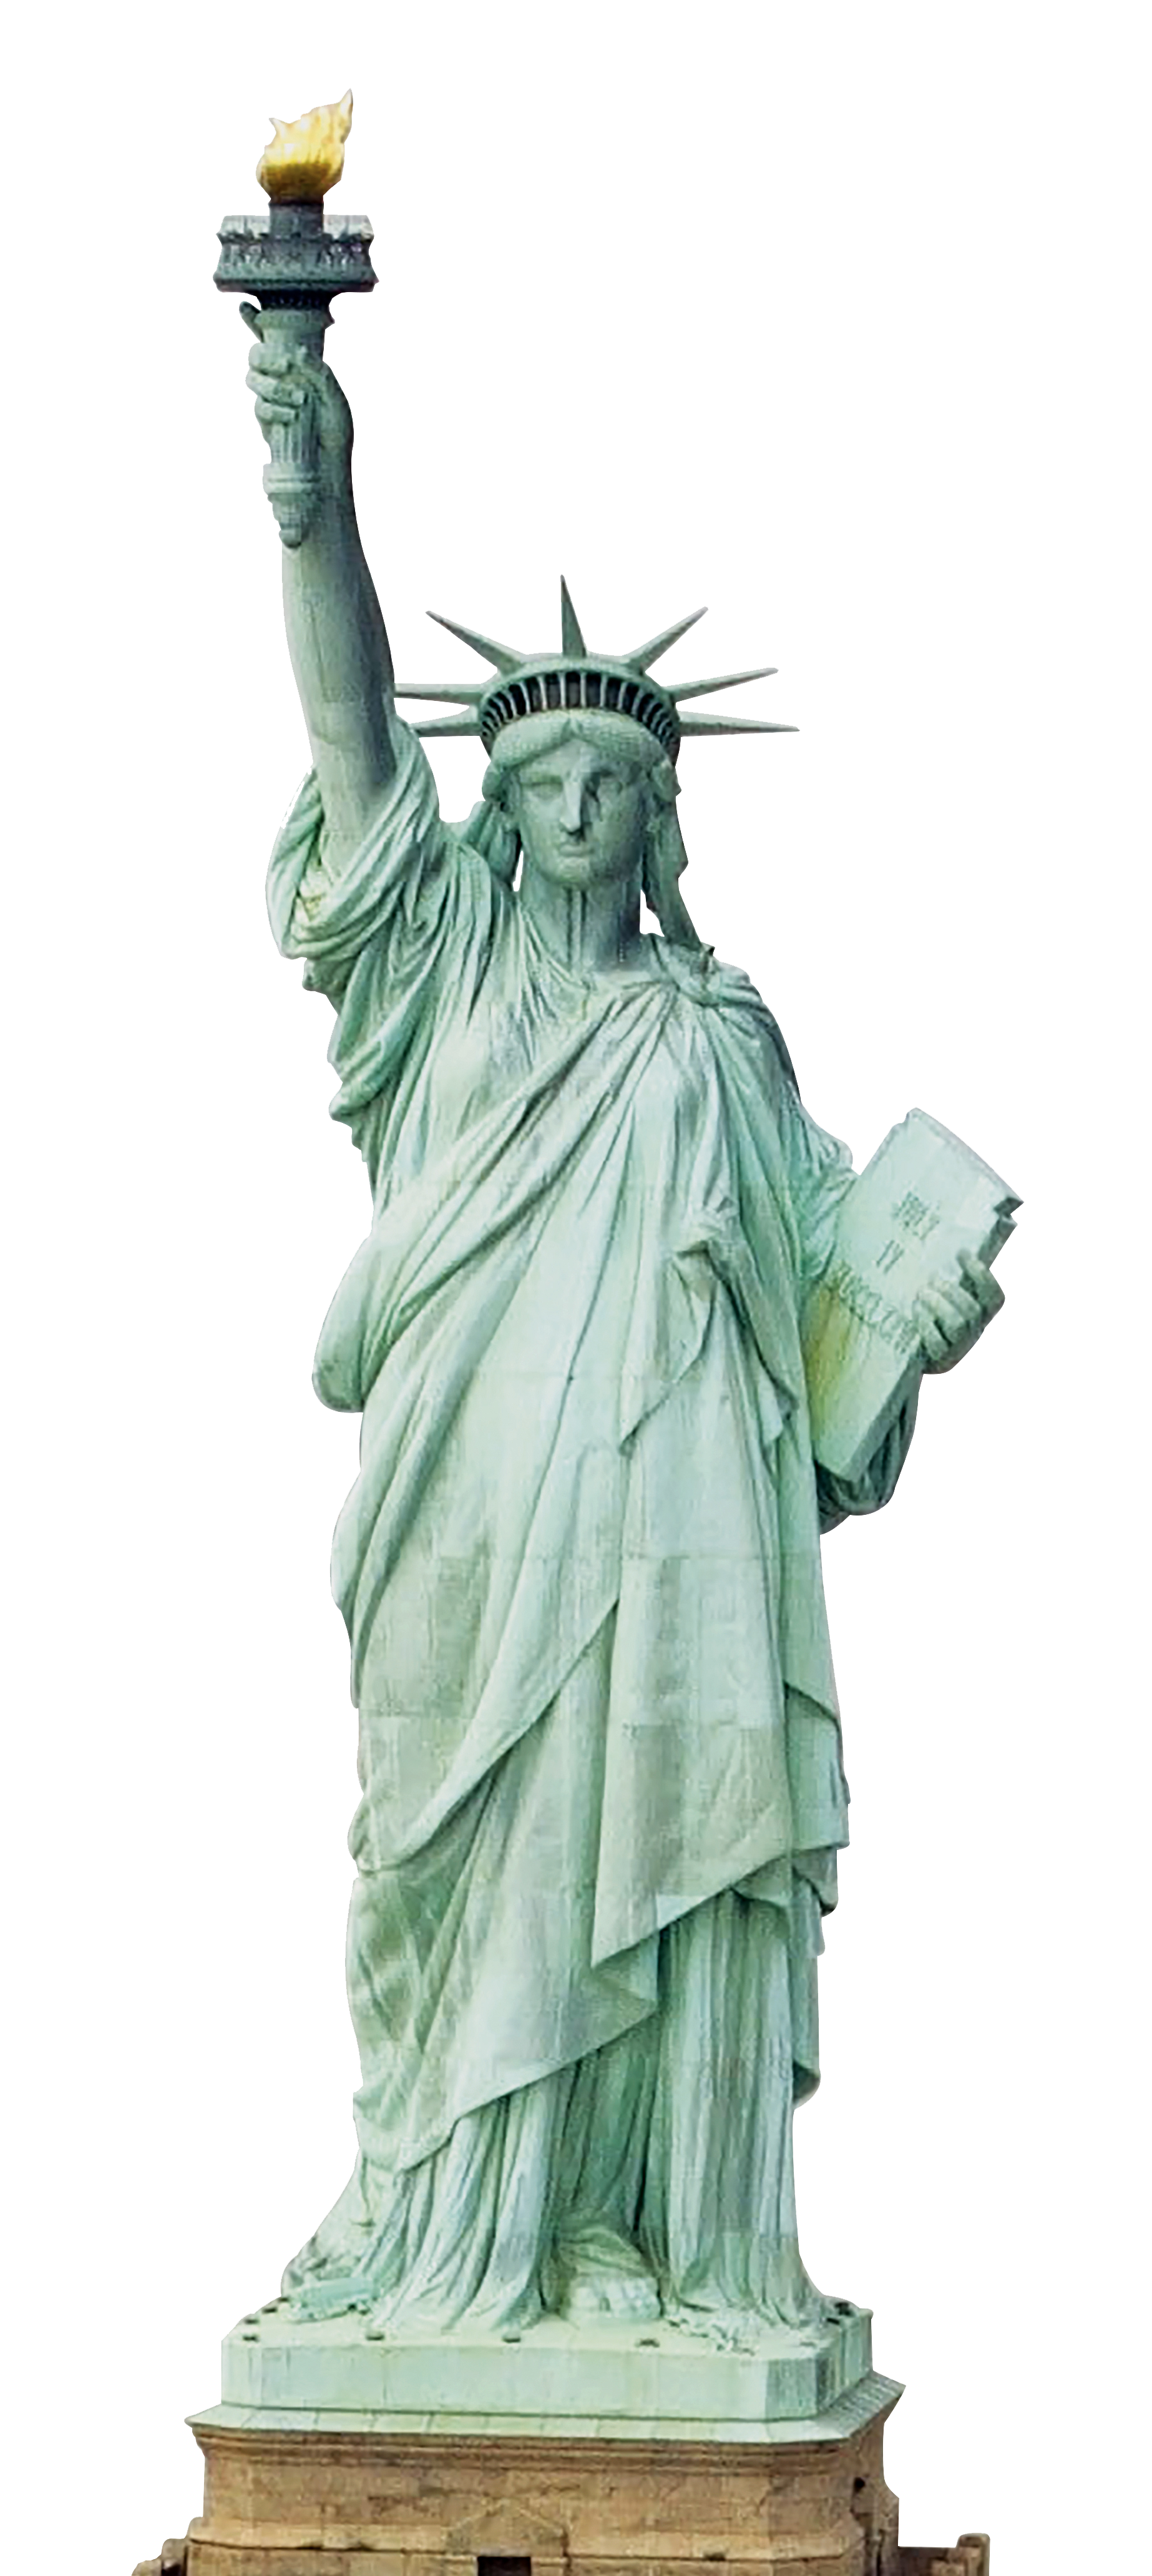 Statue png. Of liberty transparent background